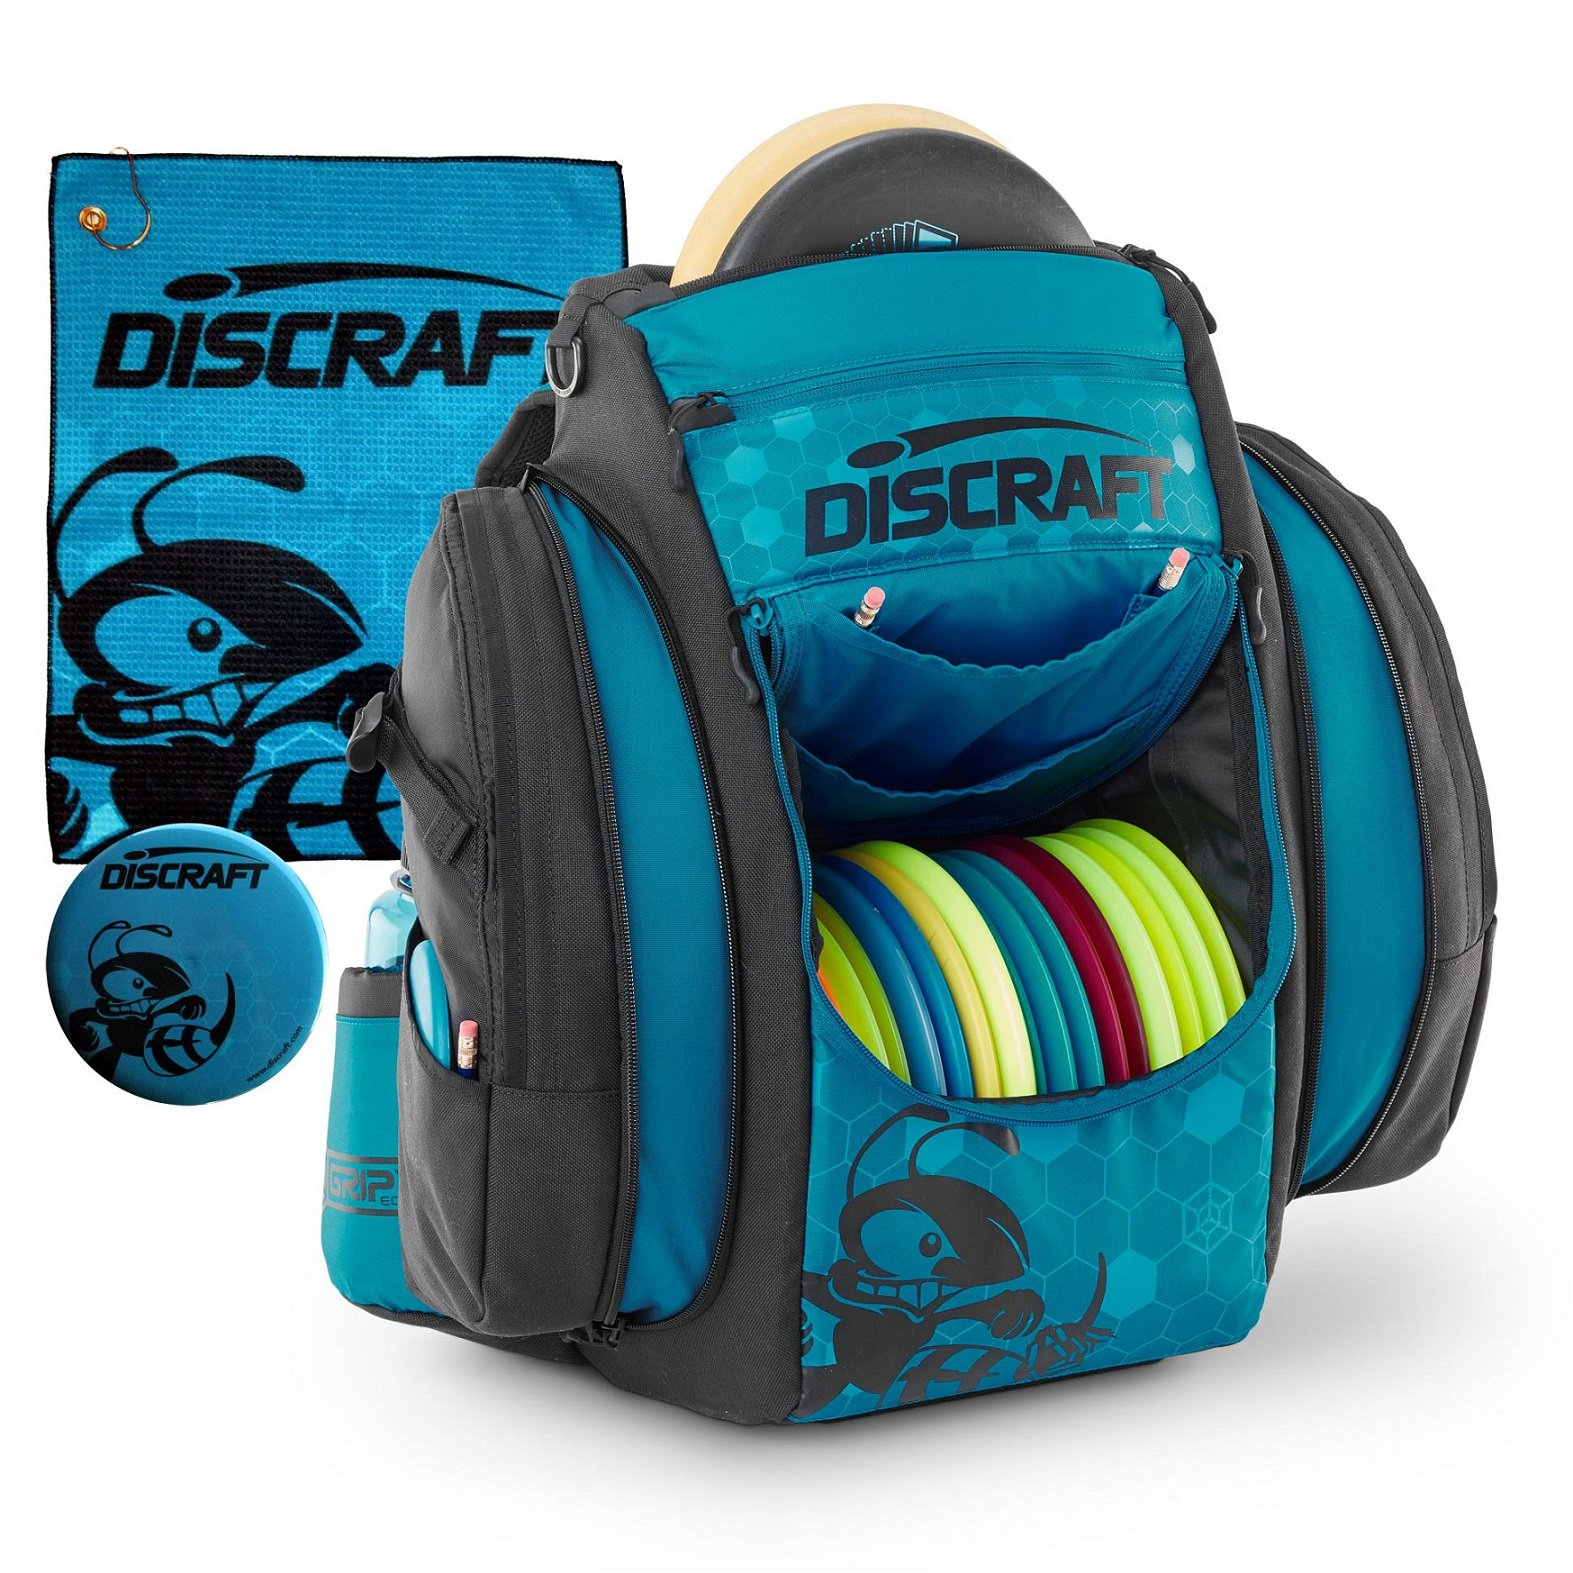 Discraft Grip EQ BX BUZZZ Disc Golf Bag (Ocean) by Discraft